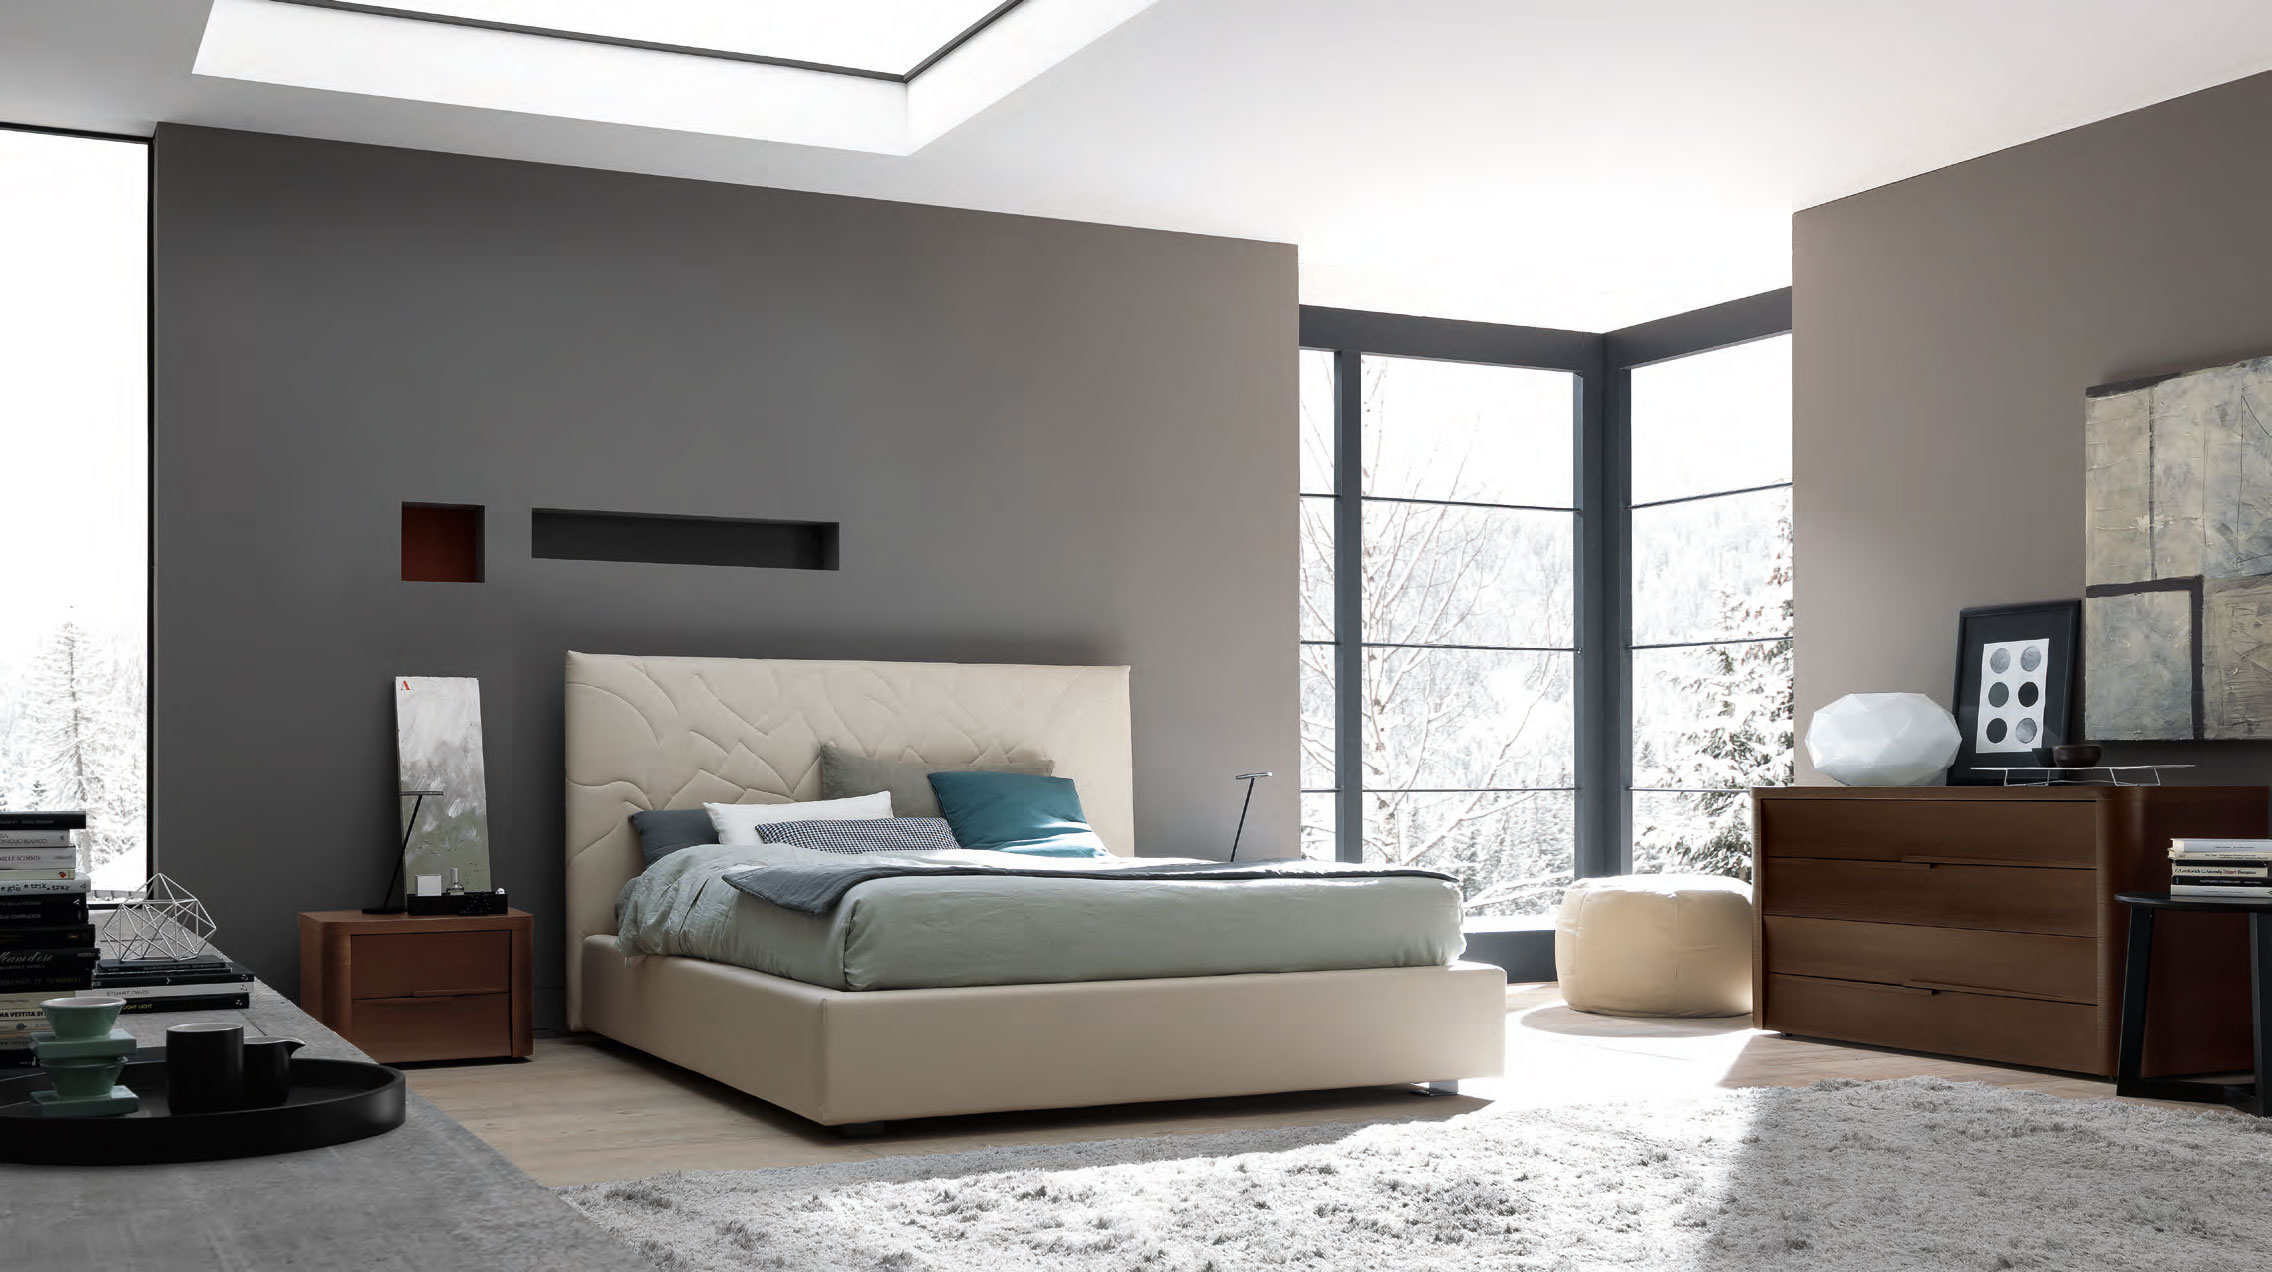 10 eye catching modern bedroom decoration ideas modern for Contemporary bedroom ideas